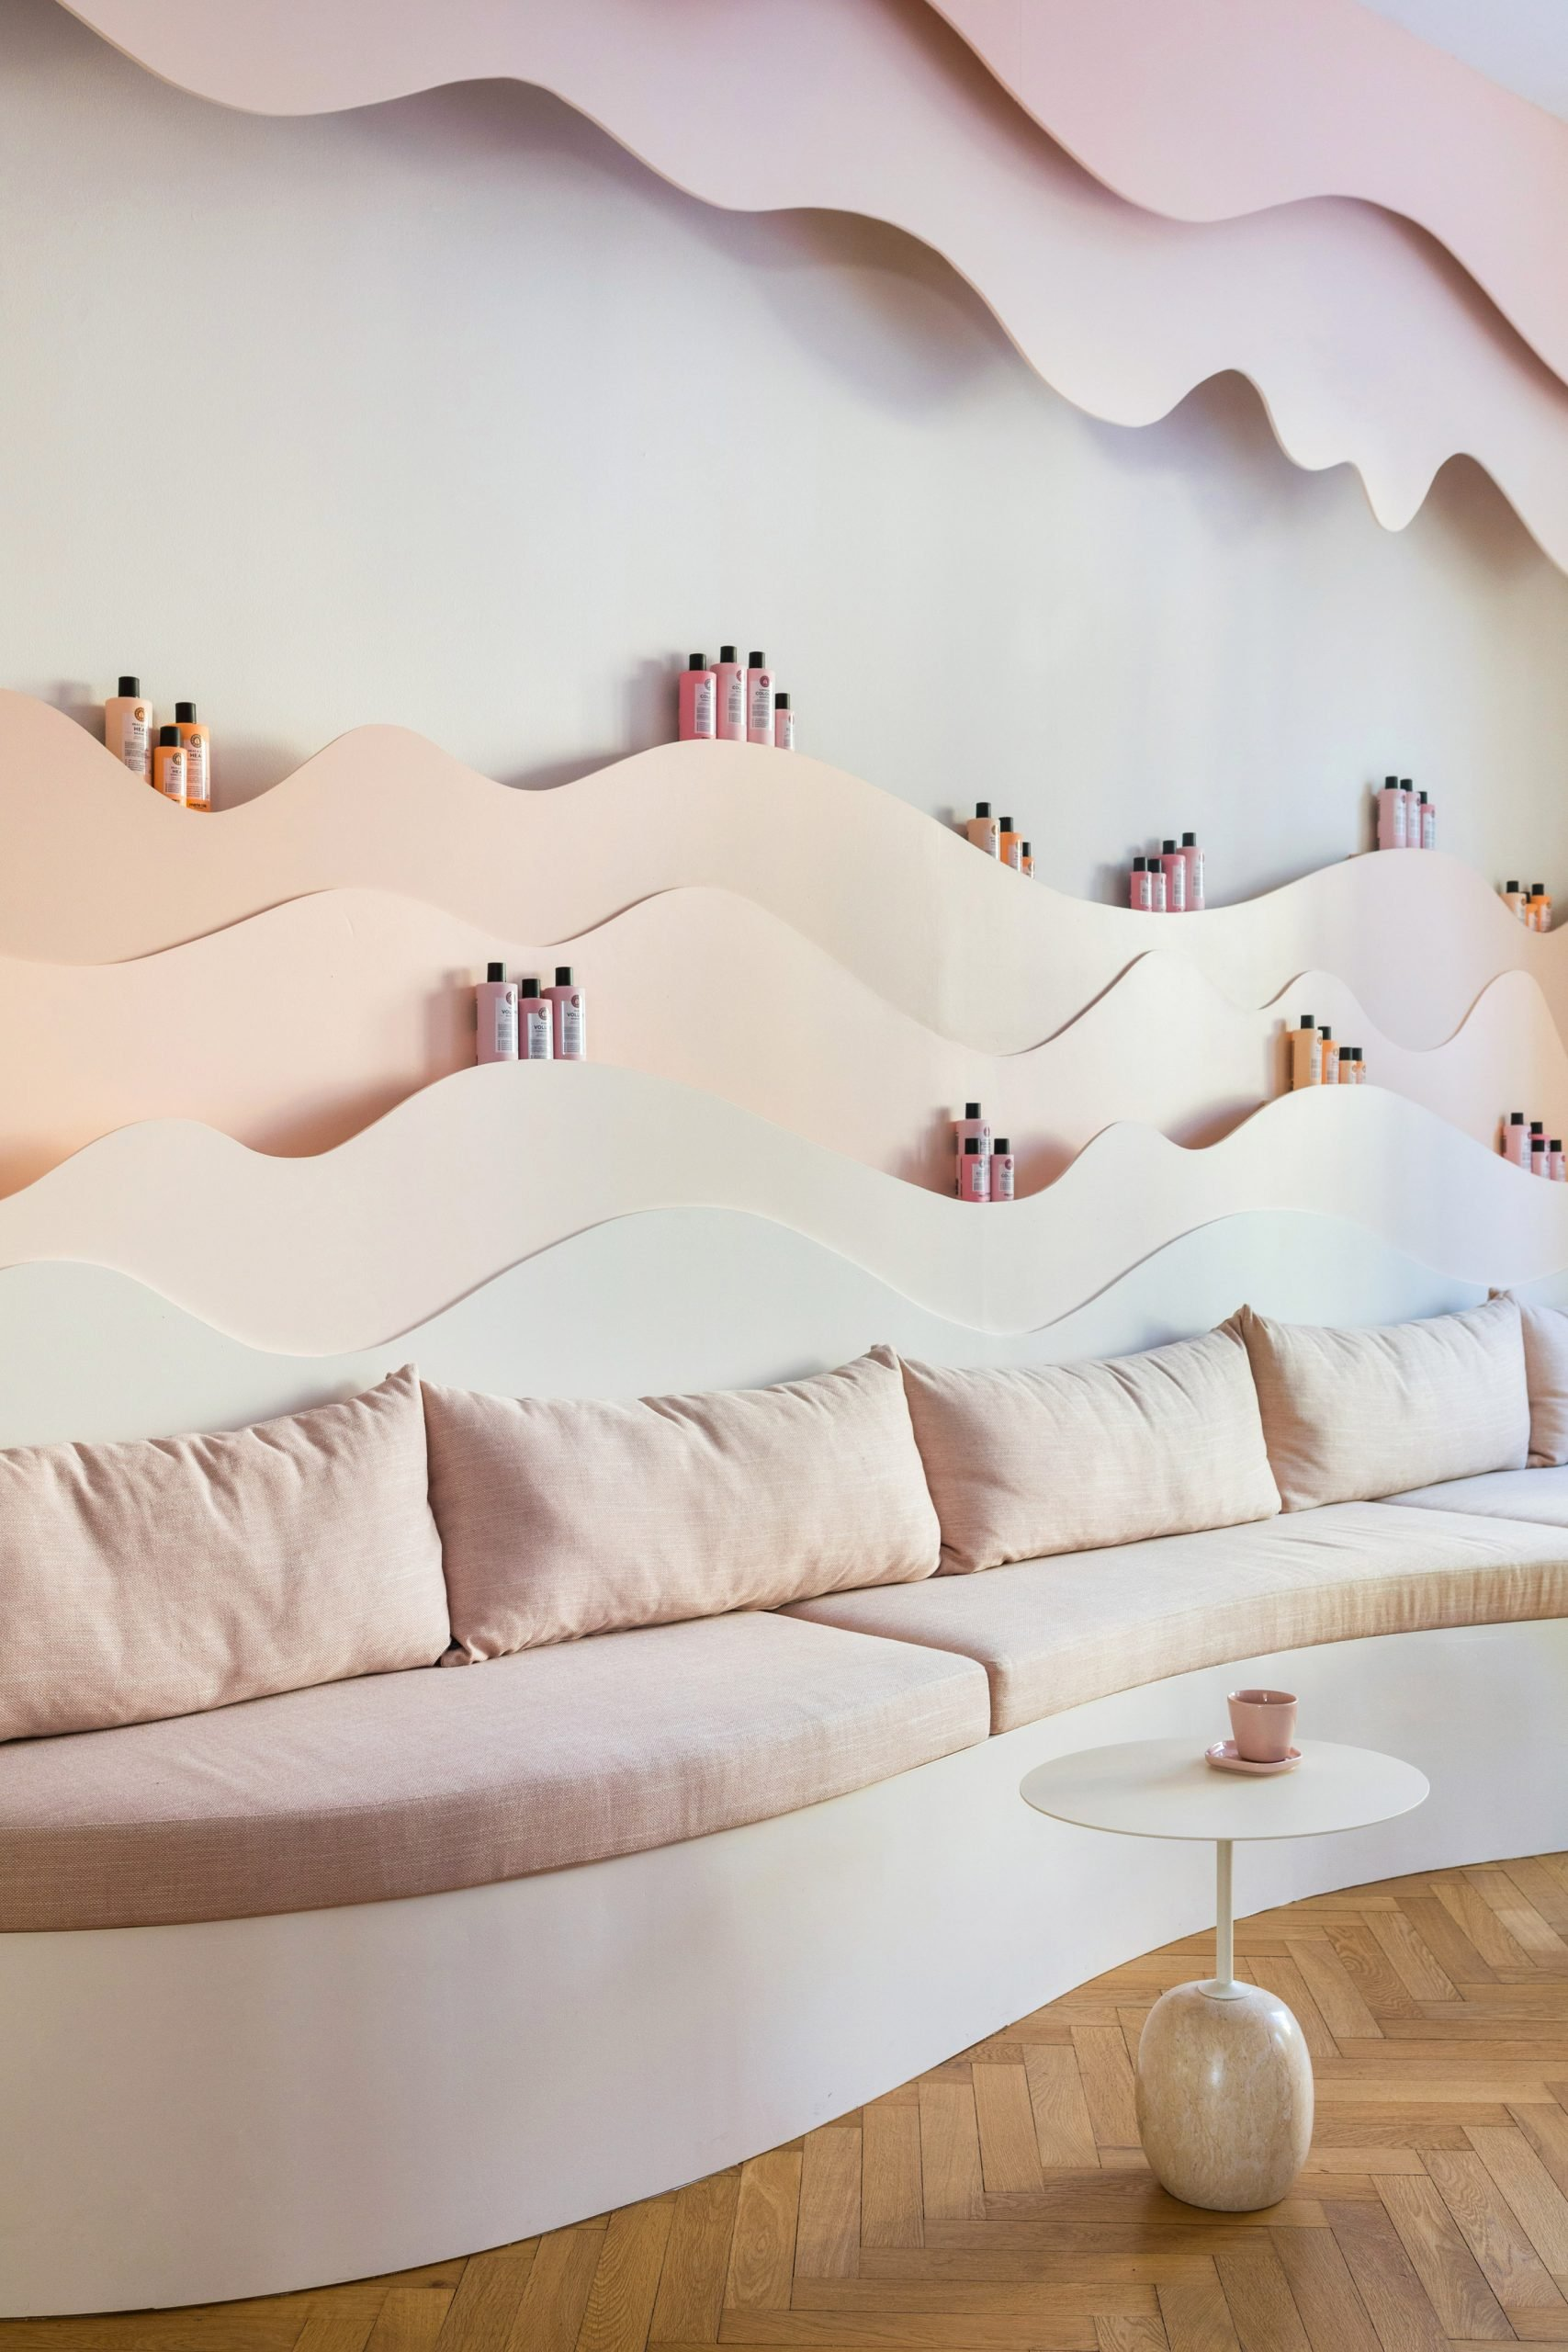 Specially designed shelves for beauty products